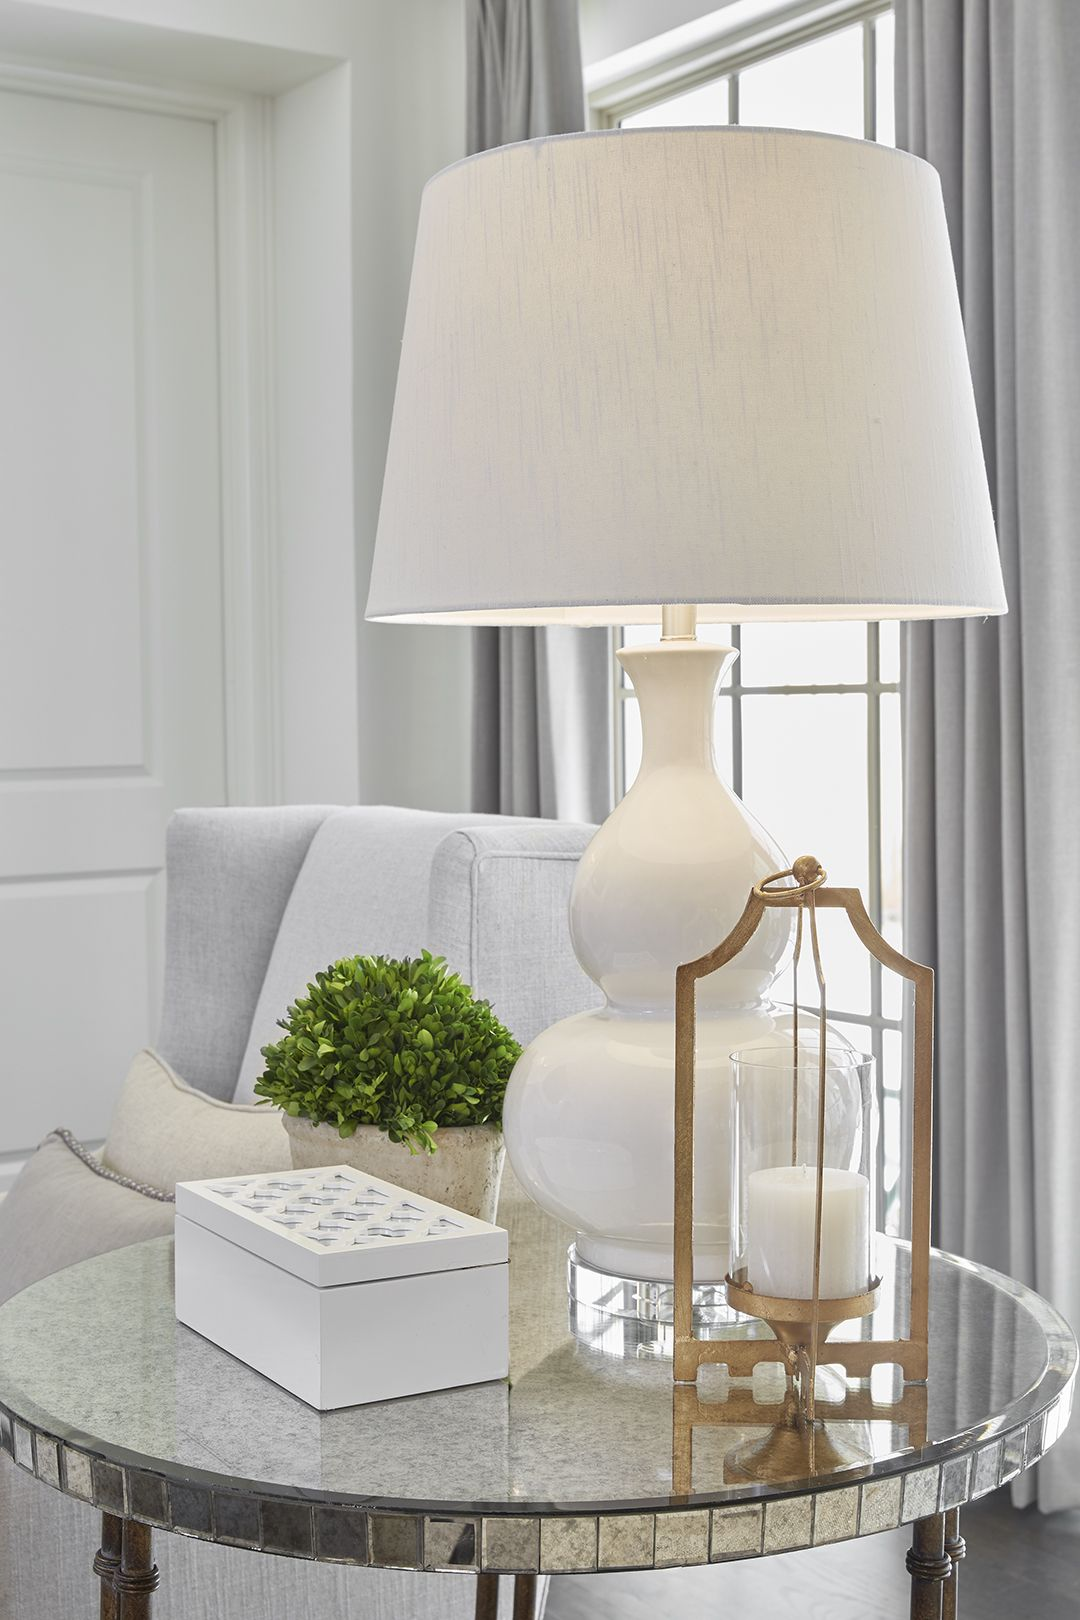 Living Room End Table Decor Lighting White Side